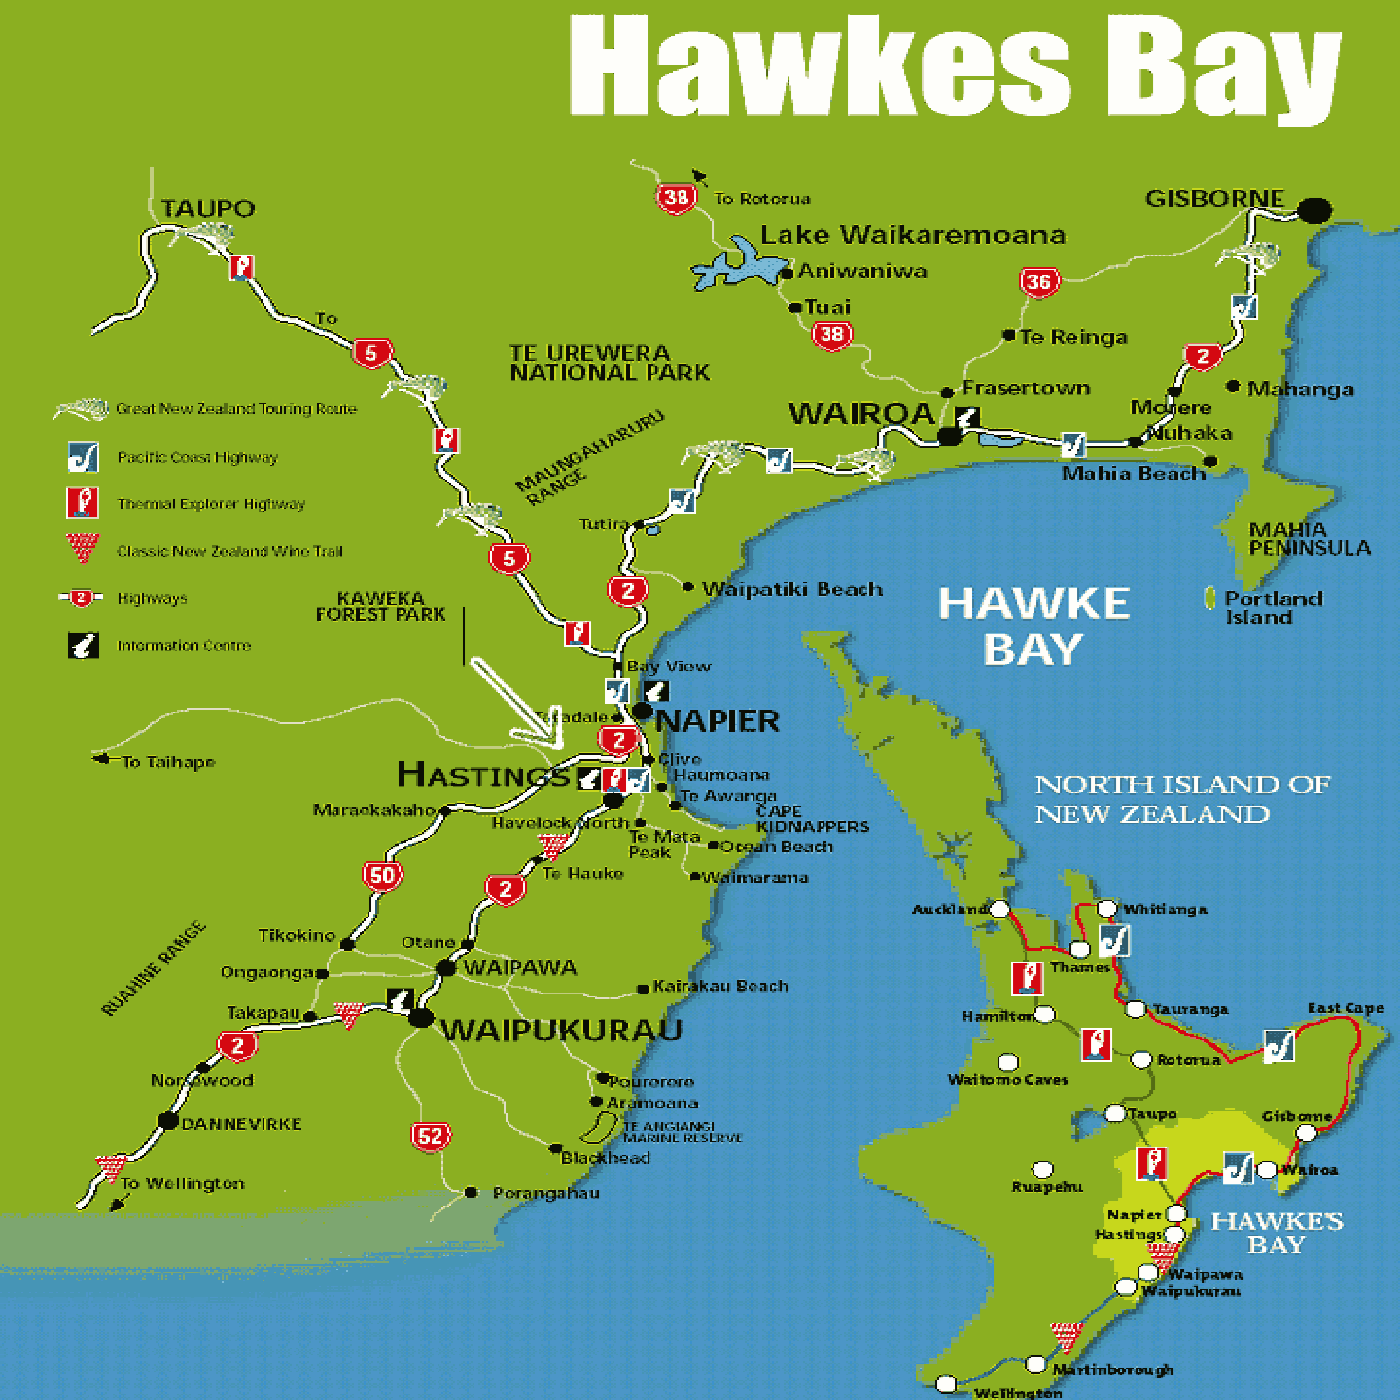 https://cdn.accessradio.org/StationFolder/kidnappers/Images/Hawkes-Bay-Map-City.png